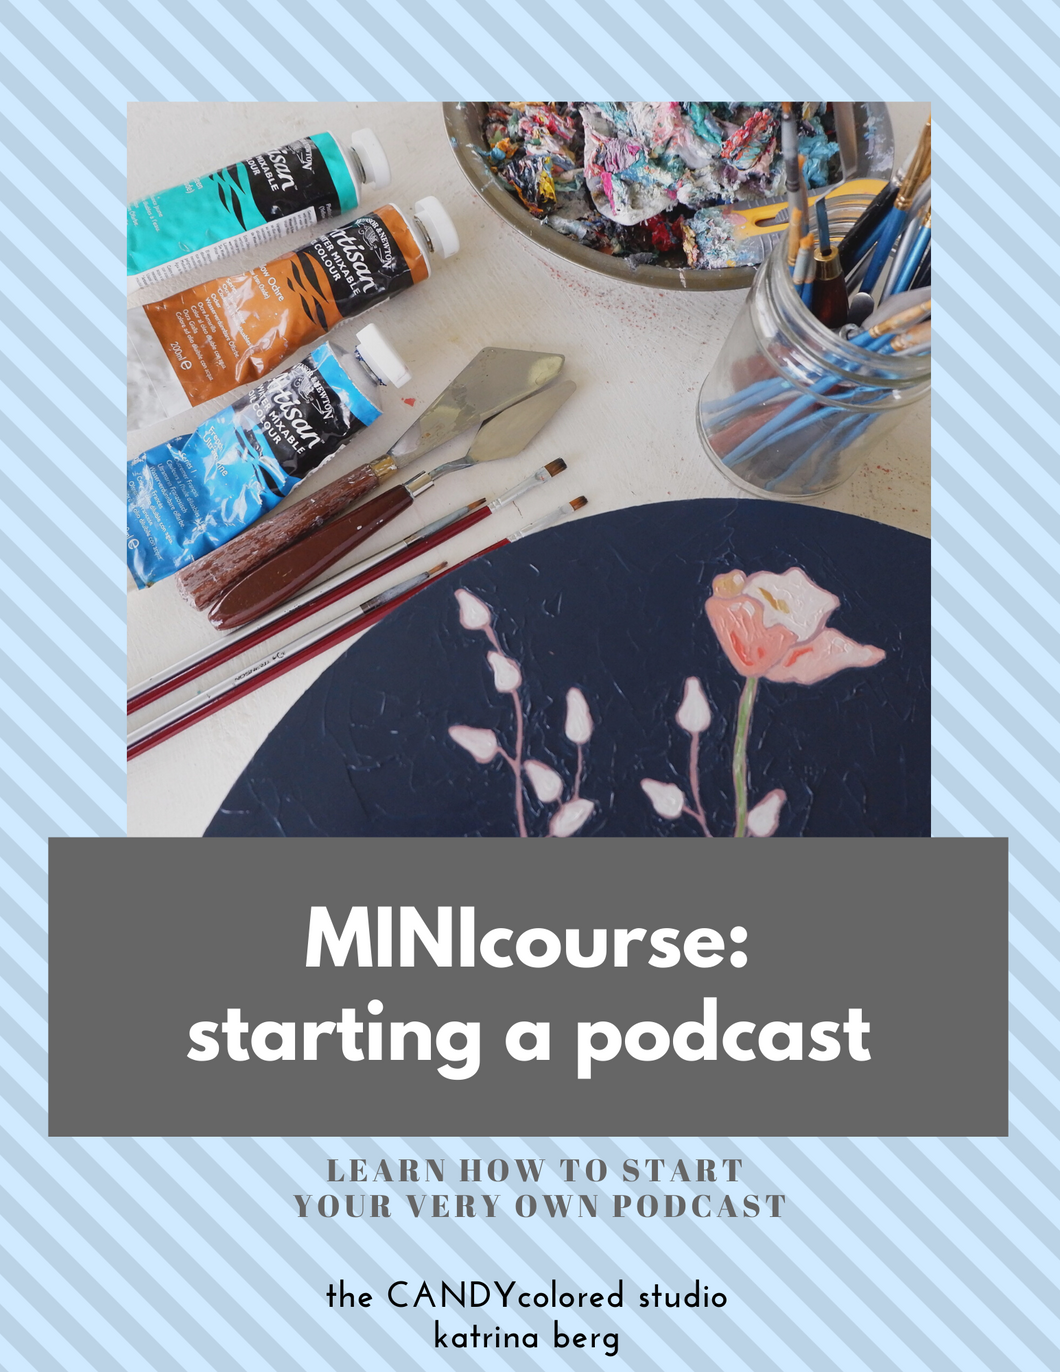 MINI course: starting a podcast